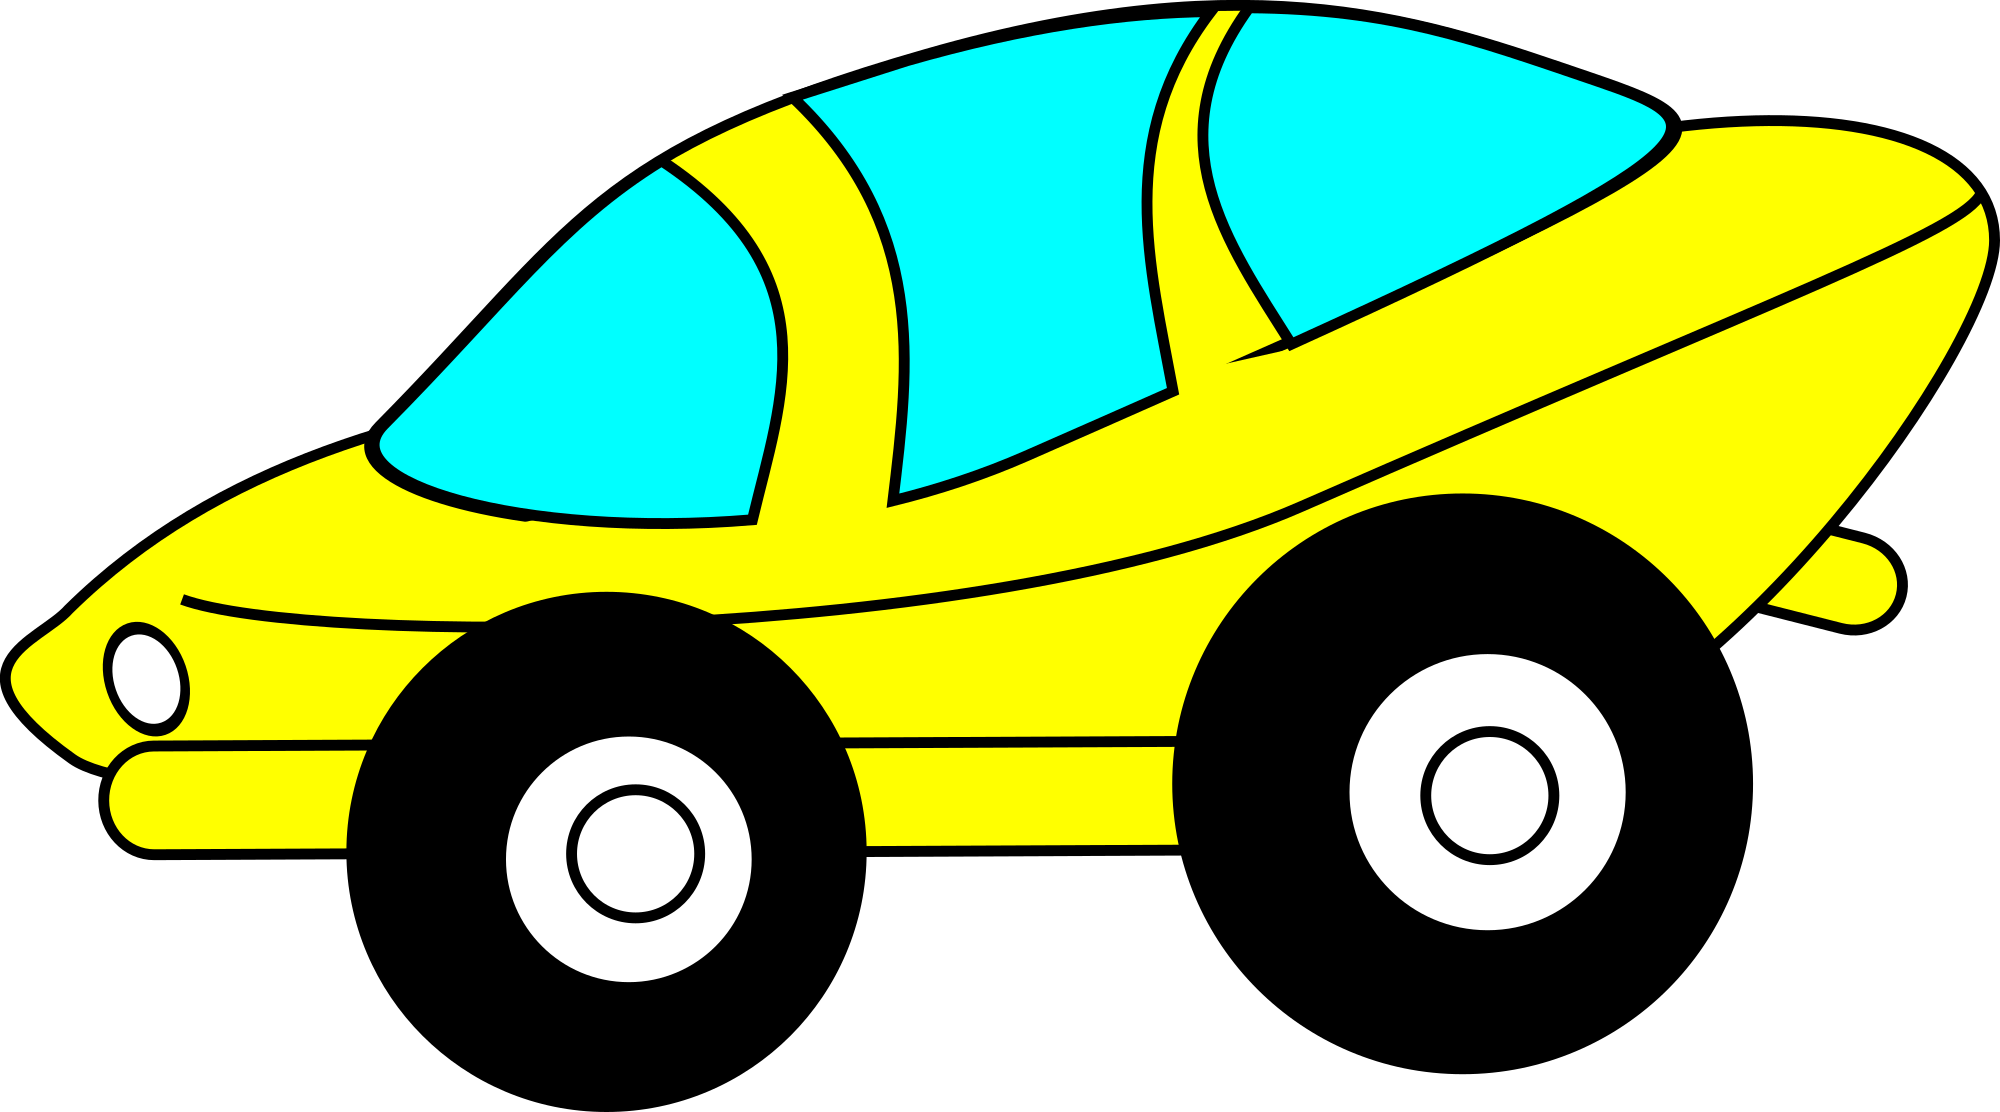 2000x1112 Cartoon Clipart Of Cars